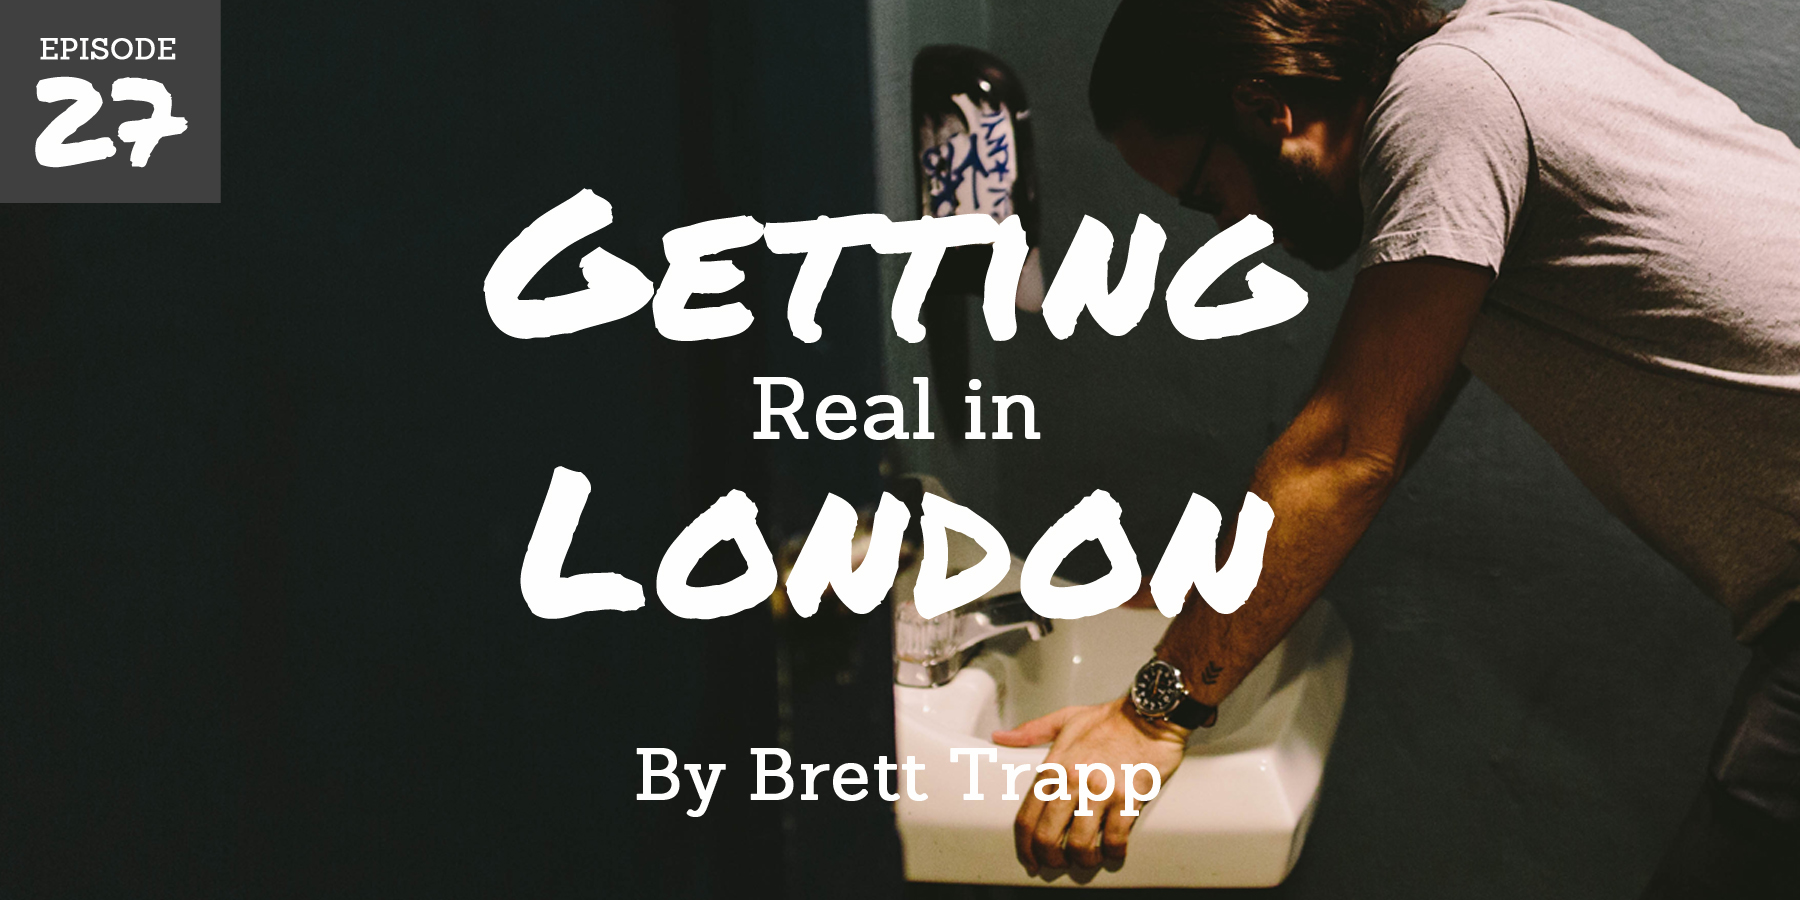 A photo tour of Brett's 2010 trip to Europe and an unforgettable night in London's oldest pub...